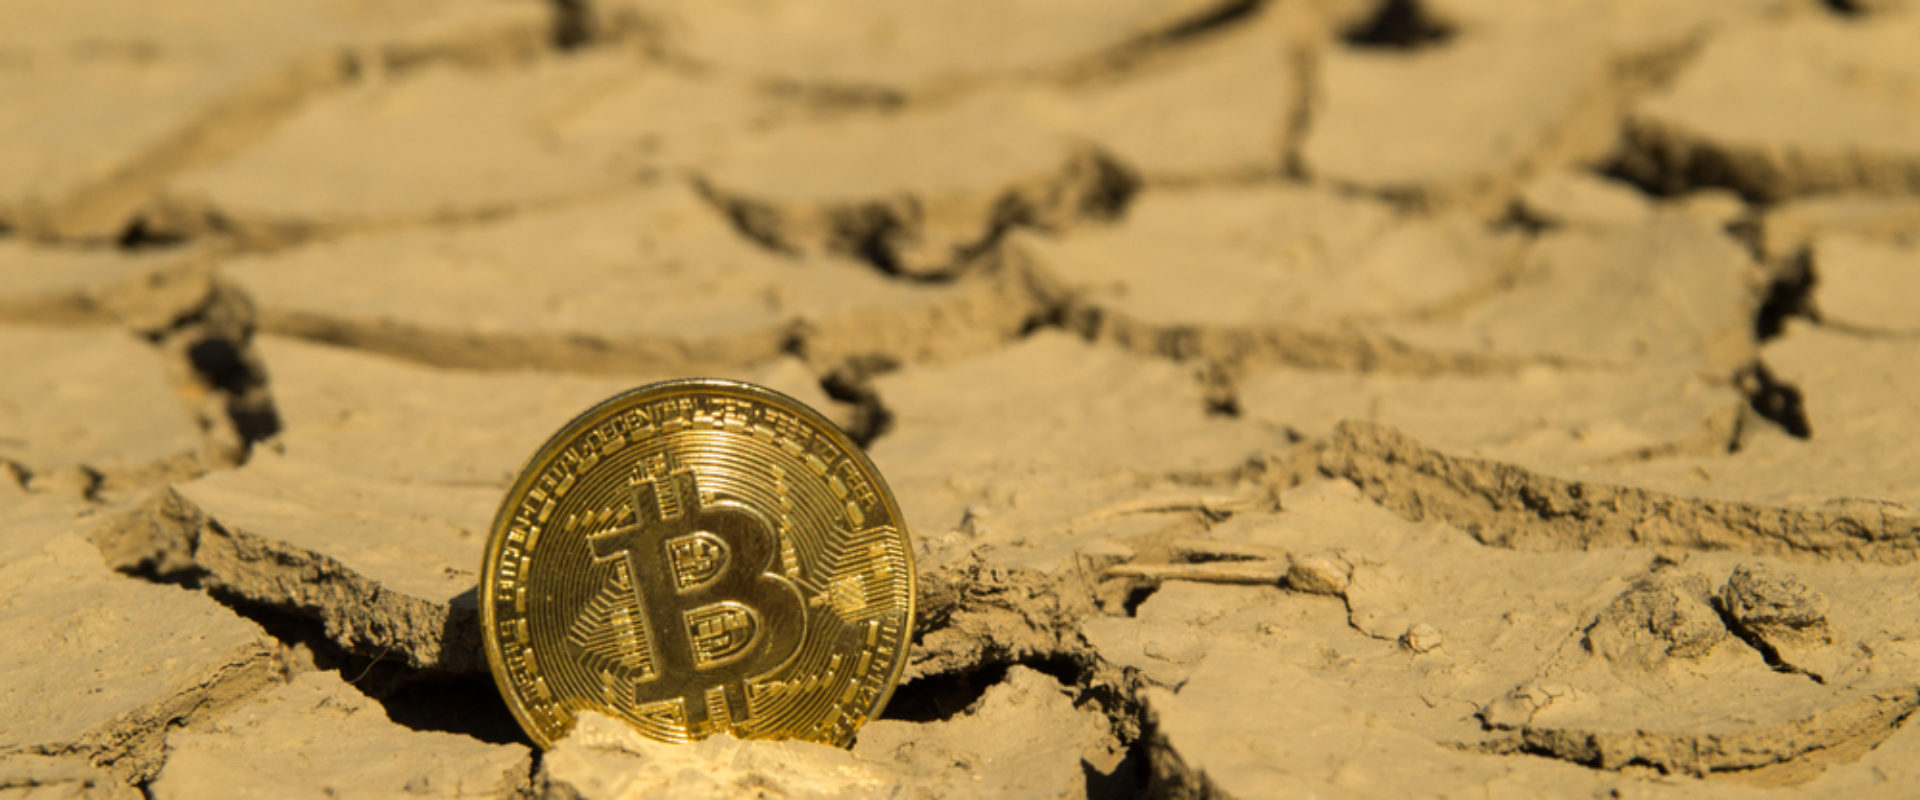 Analyst Who Predicted Bitcoin Bottom Says It Won't Find New Lows